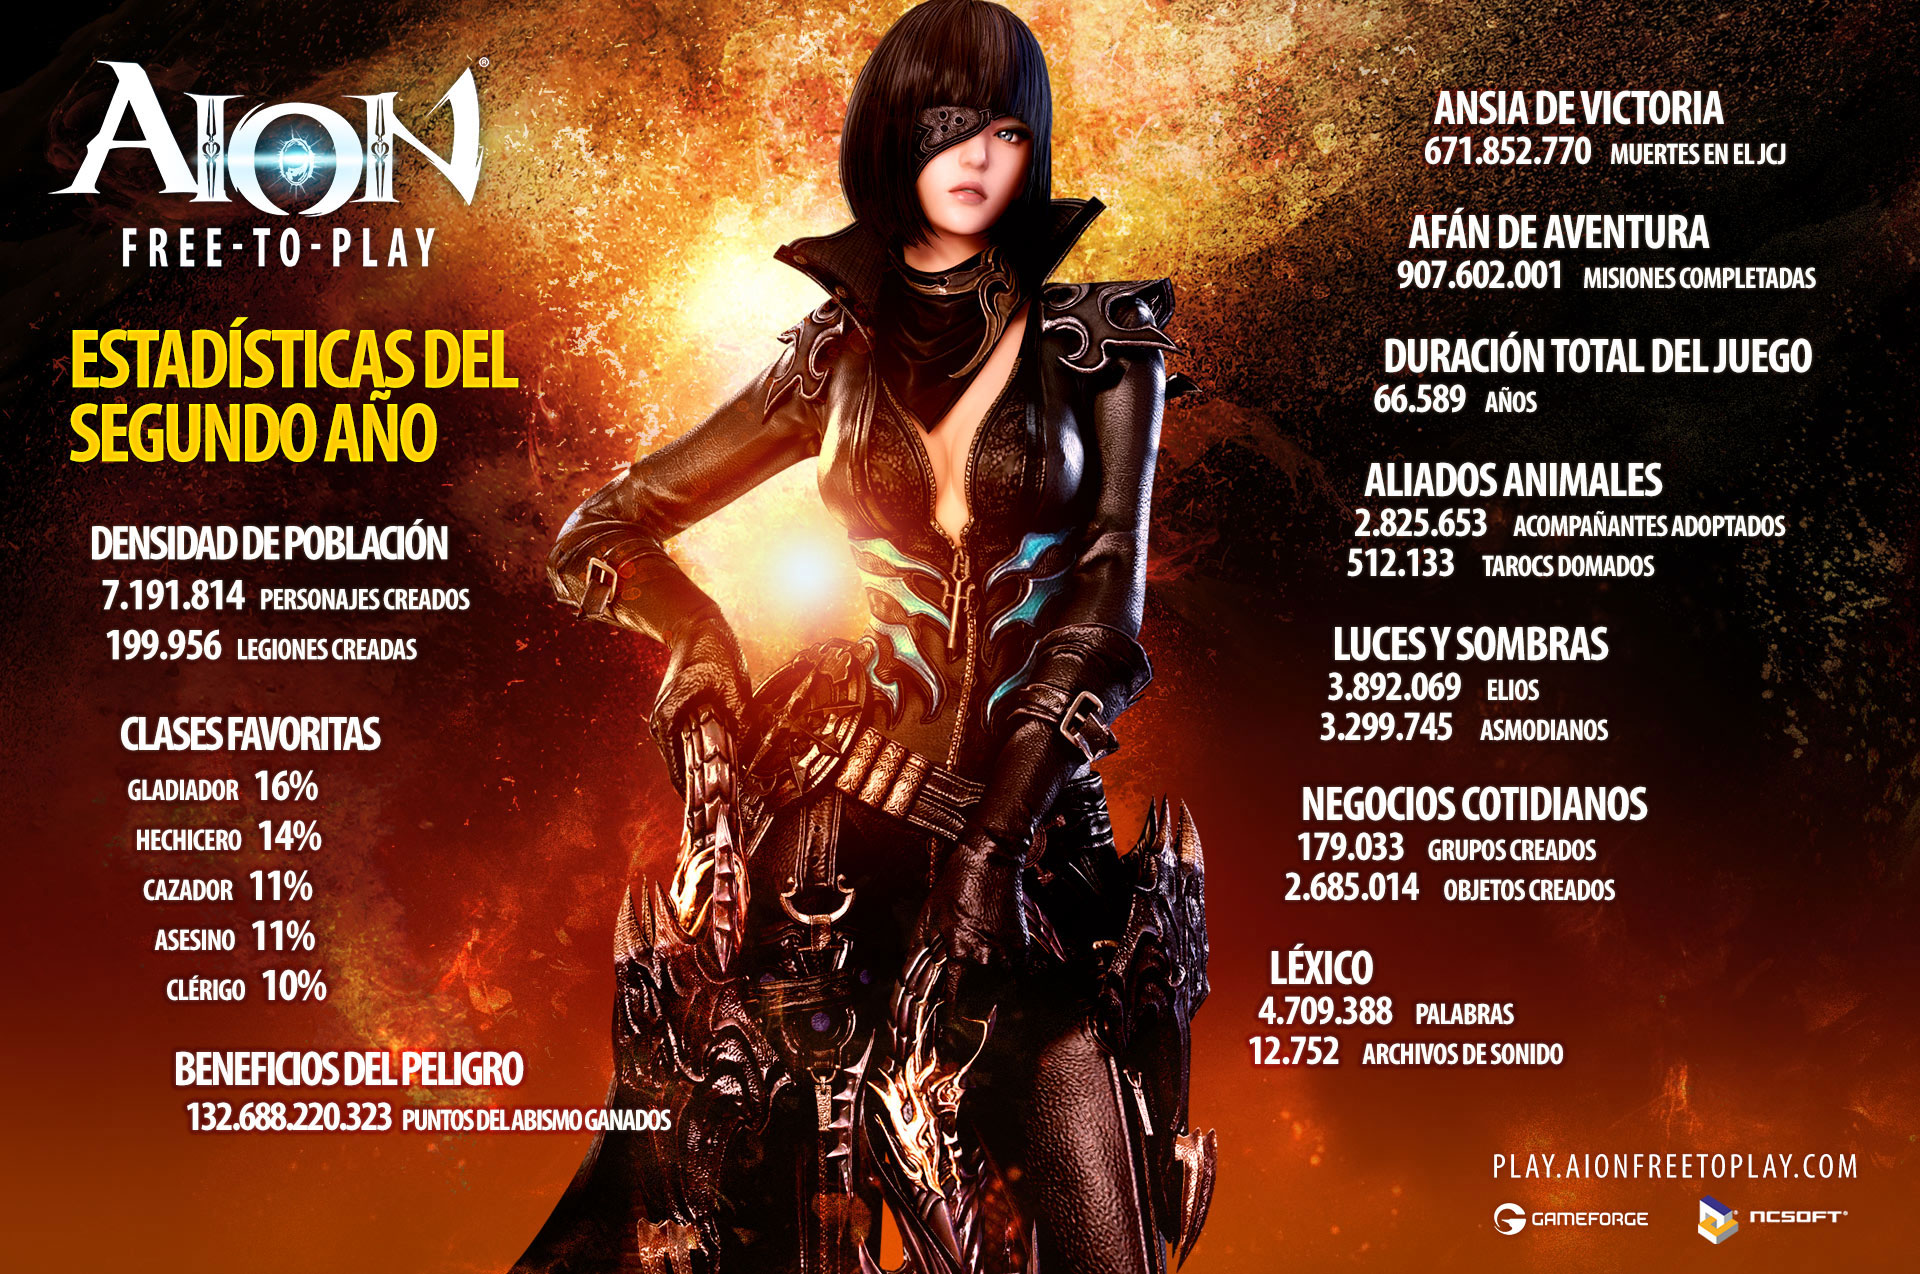 Aion free2play cumple dos años